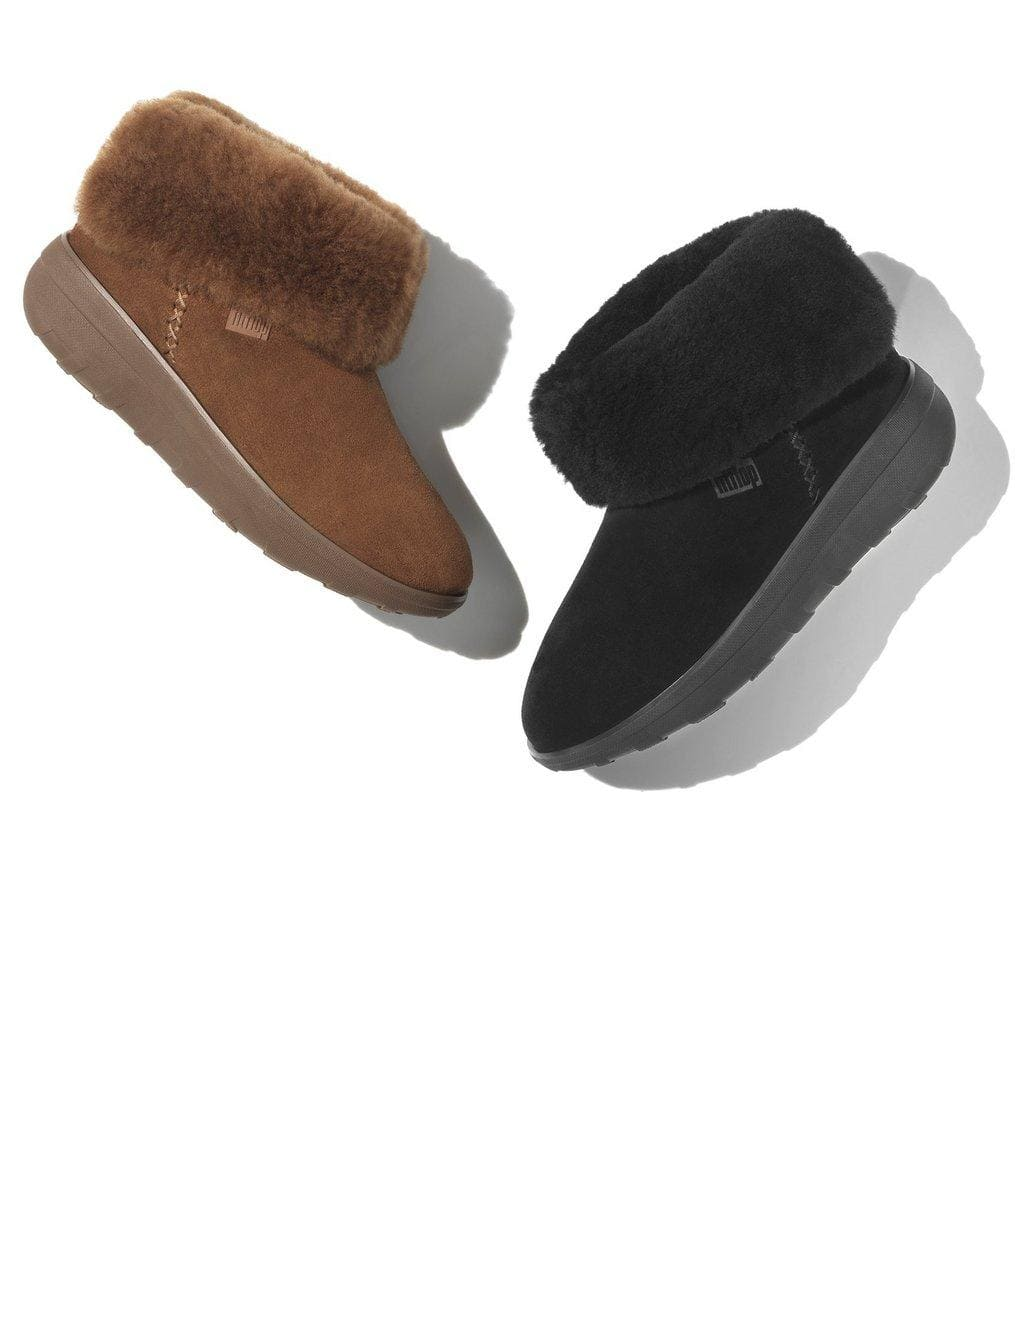 Up to 50% Off + Extra 20% Off UberKnit Footwear & Free Shipping @fitflop